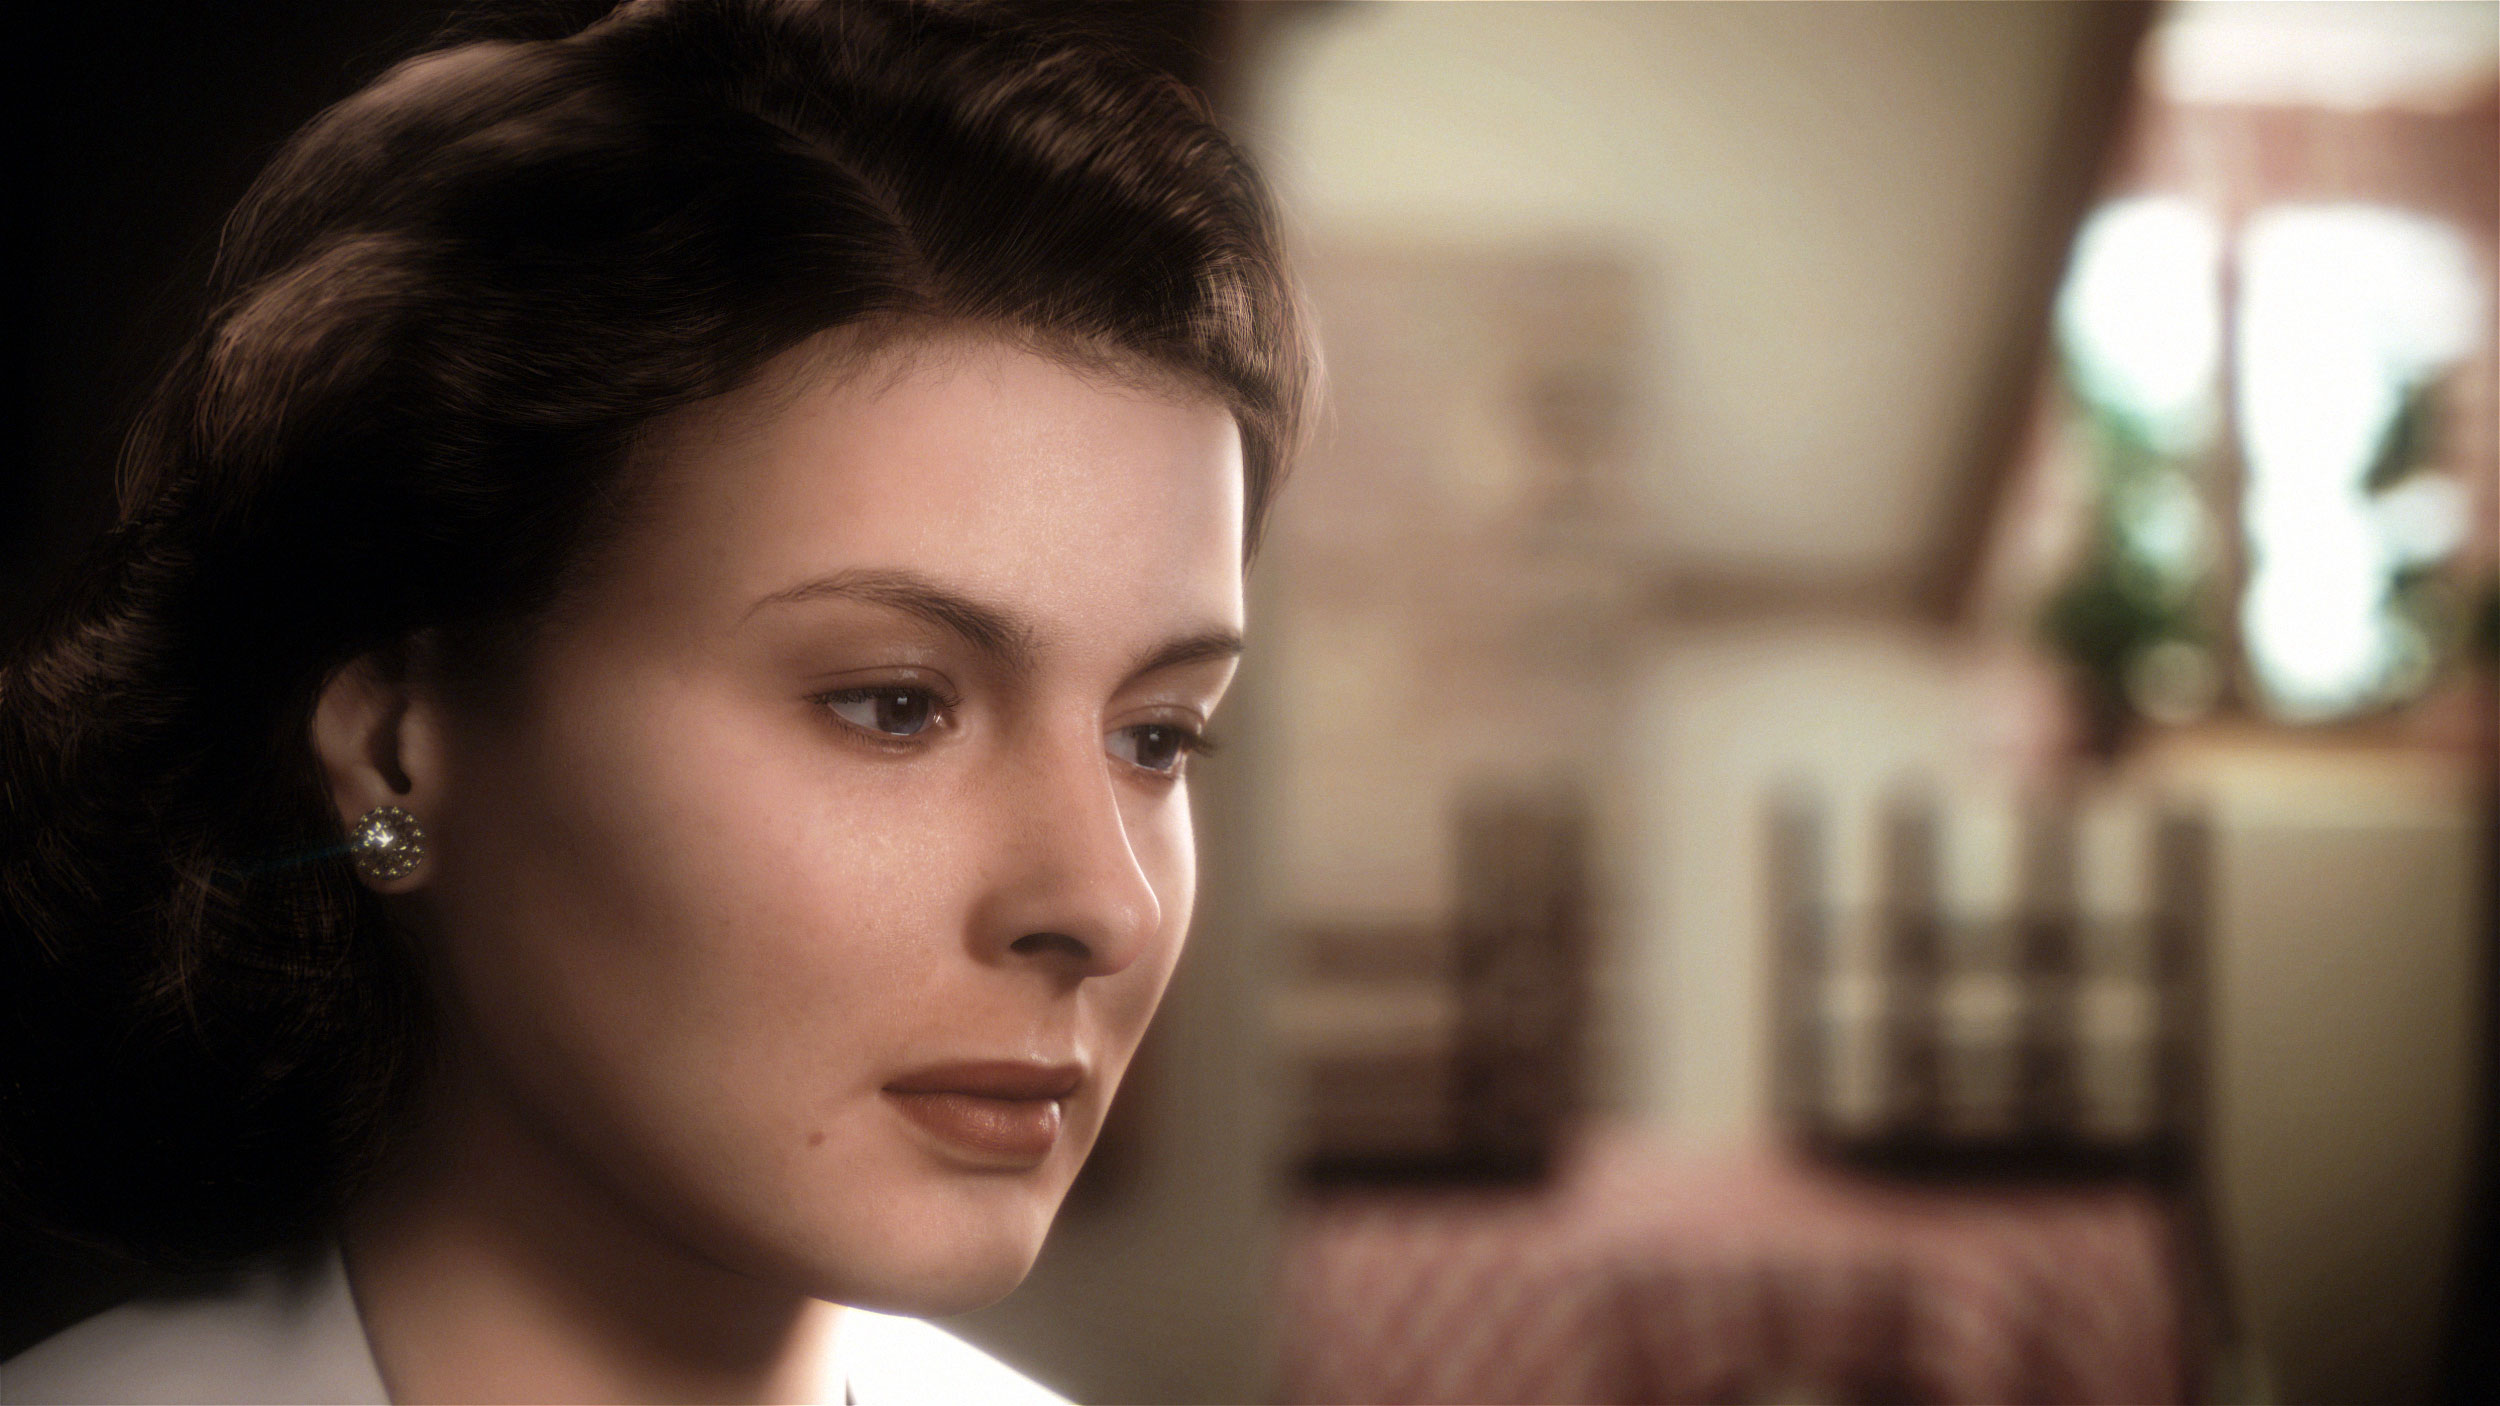 Ingrid Bergman hd wallpaper Wallpaper